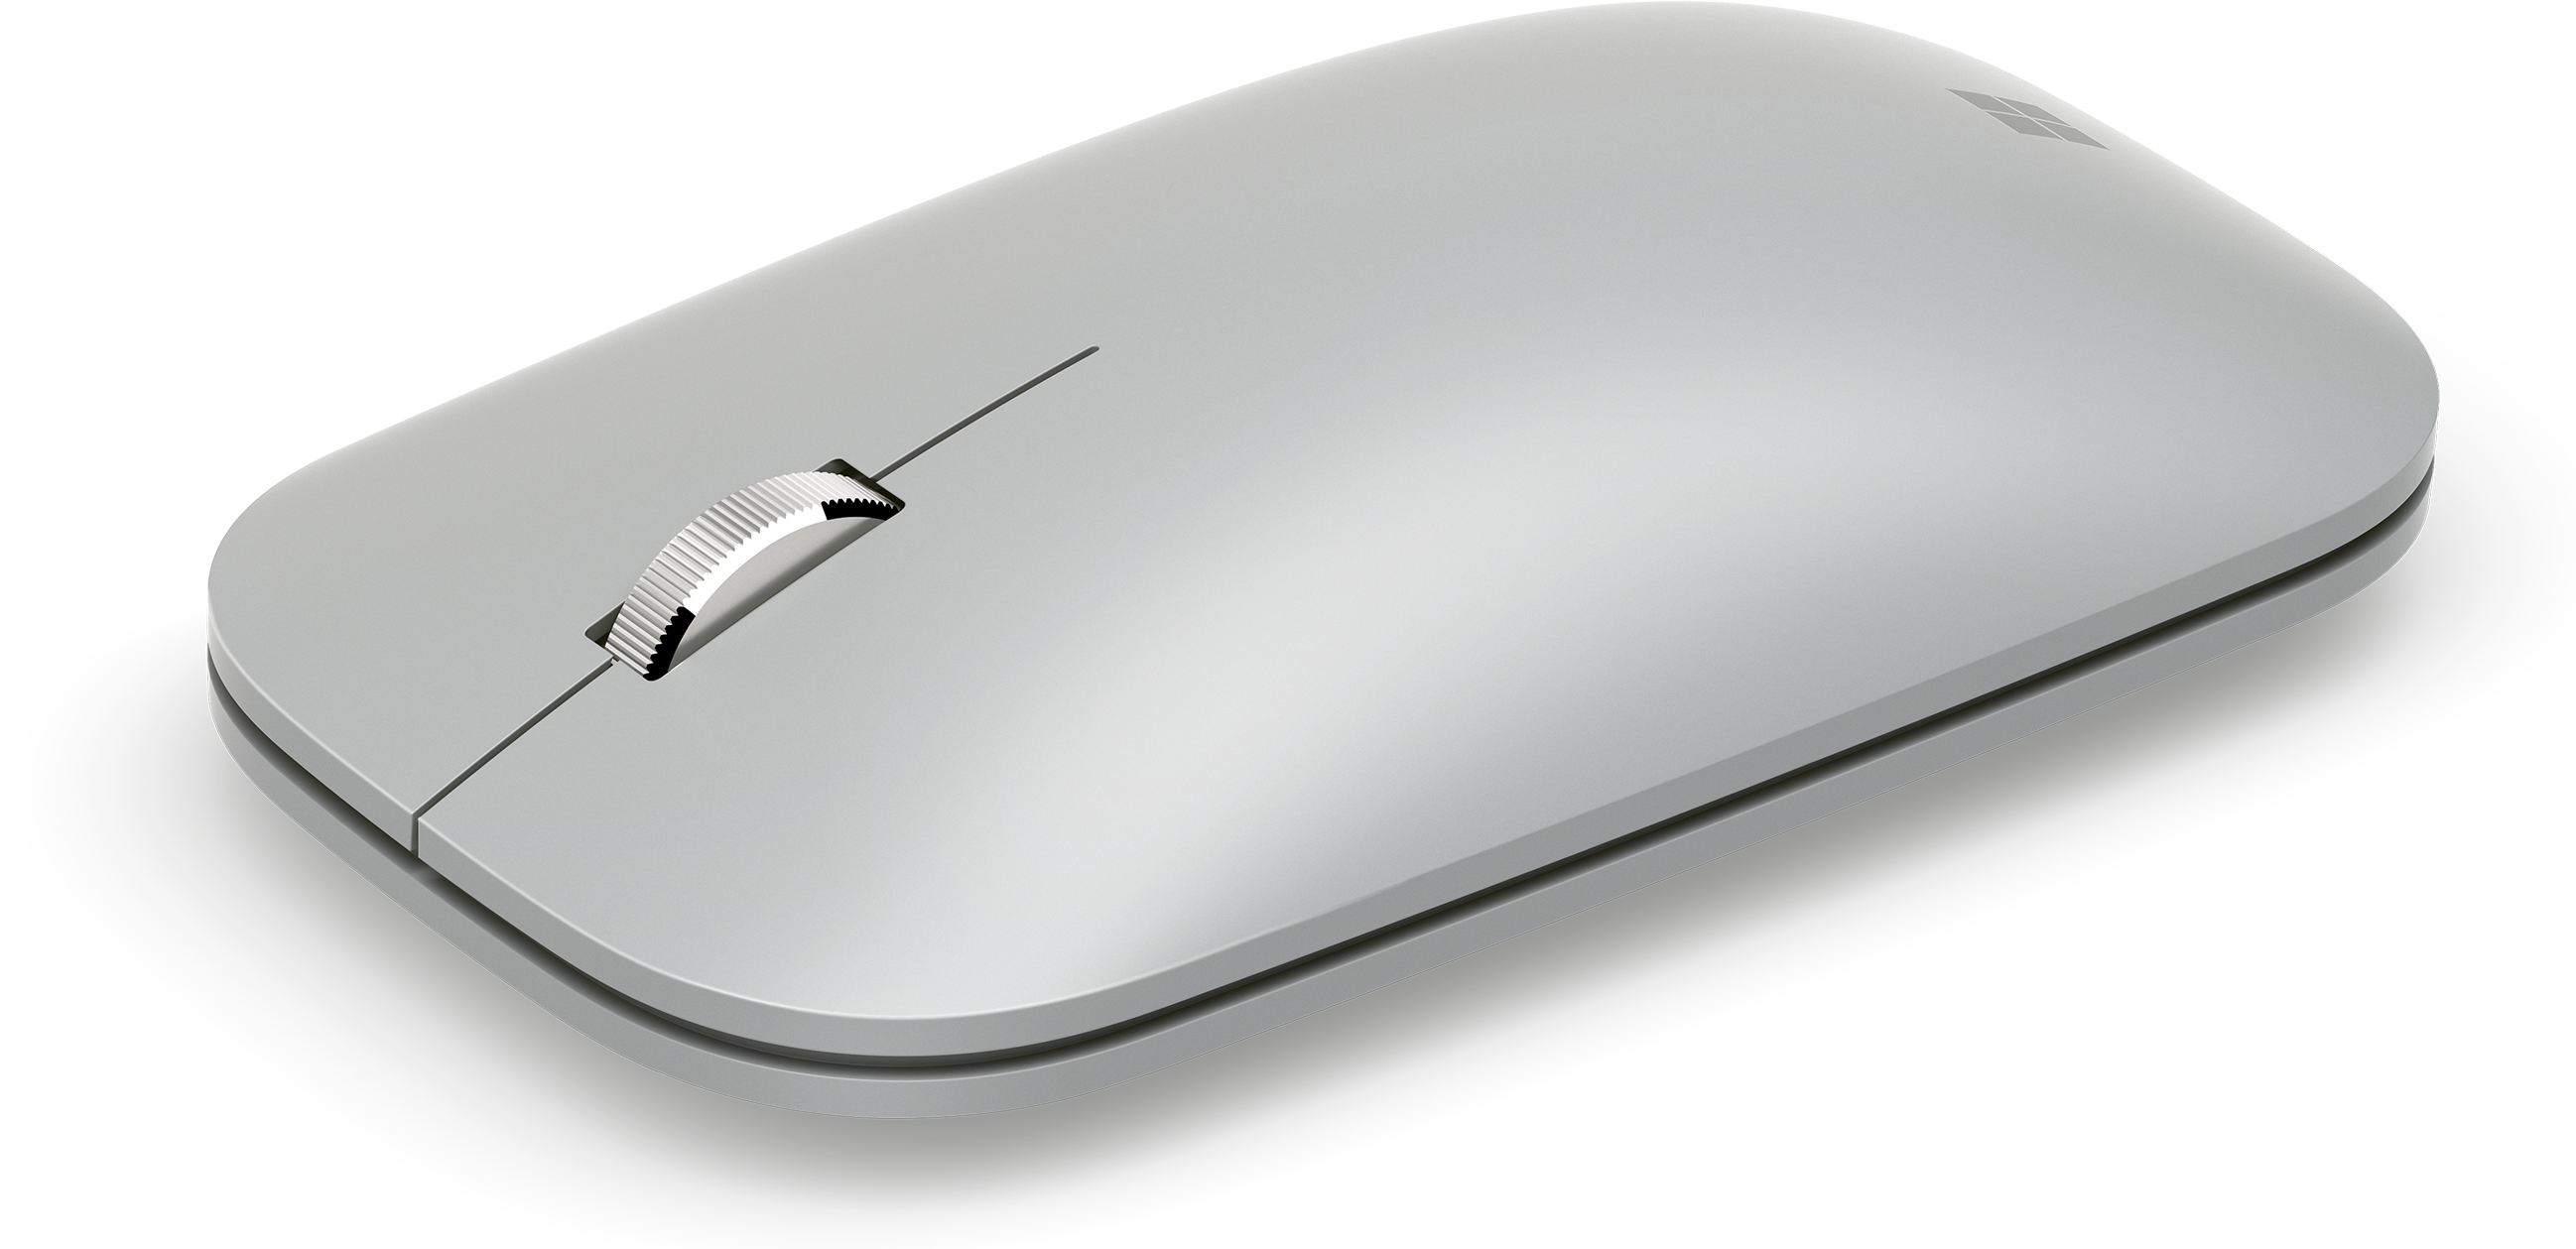 Surface Mobile Mouse Light and portable, the new Surface Mobile Mouse delivers seamless scrolling and cord-free Bluetooth connectivity.